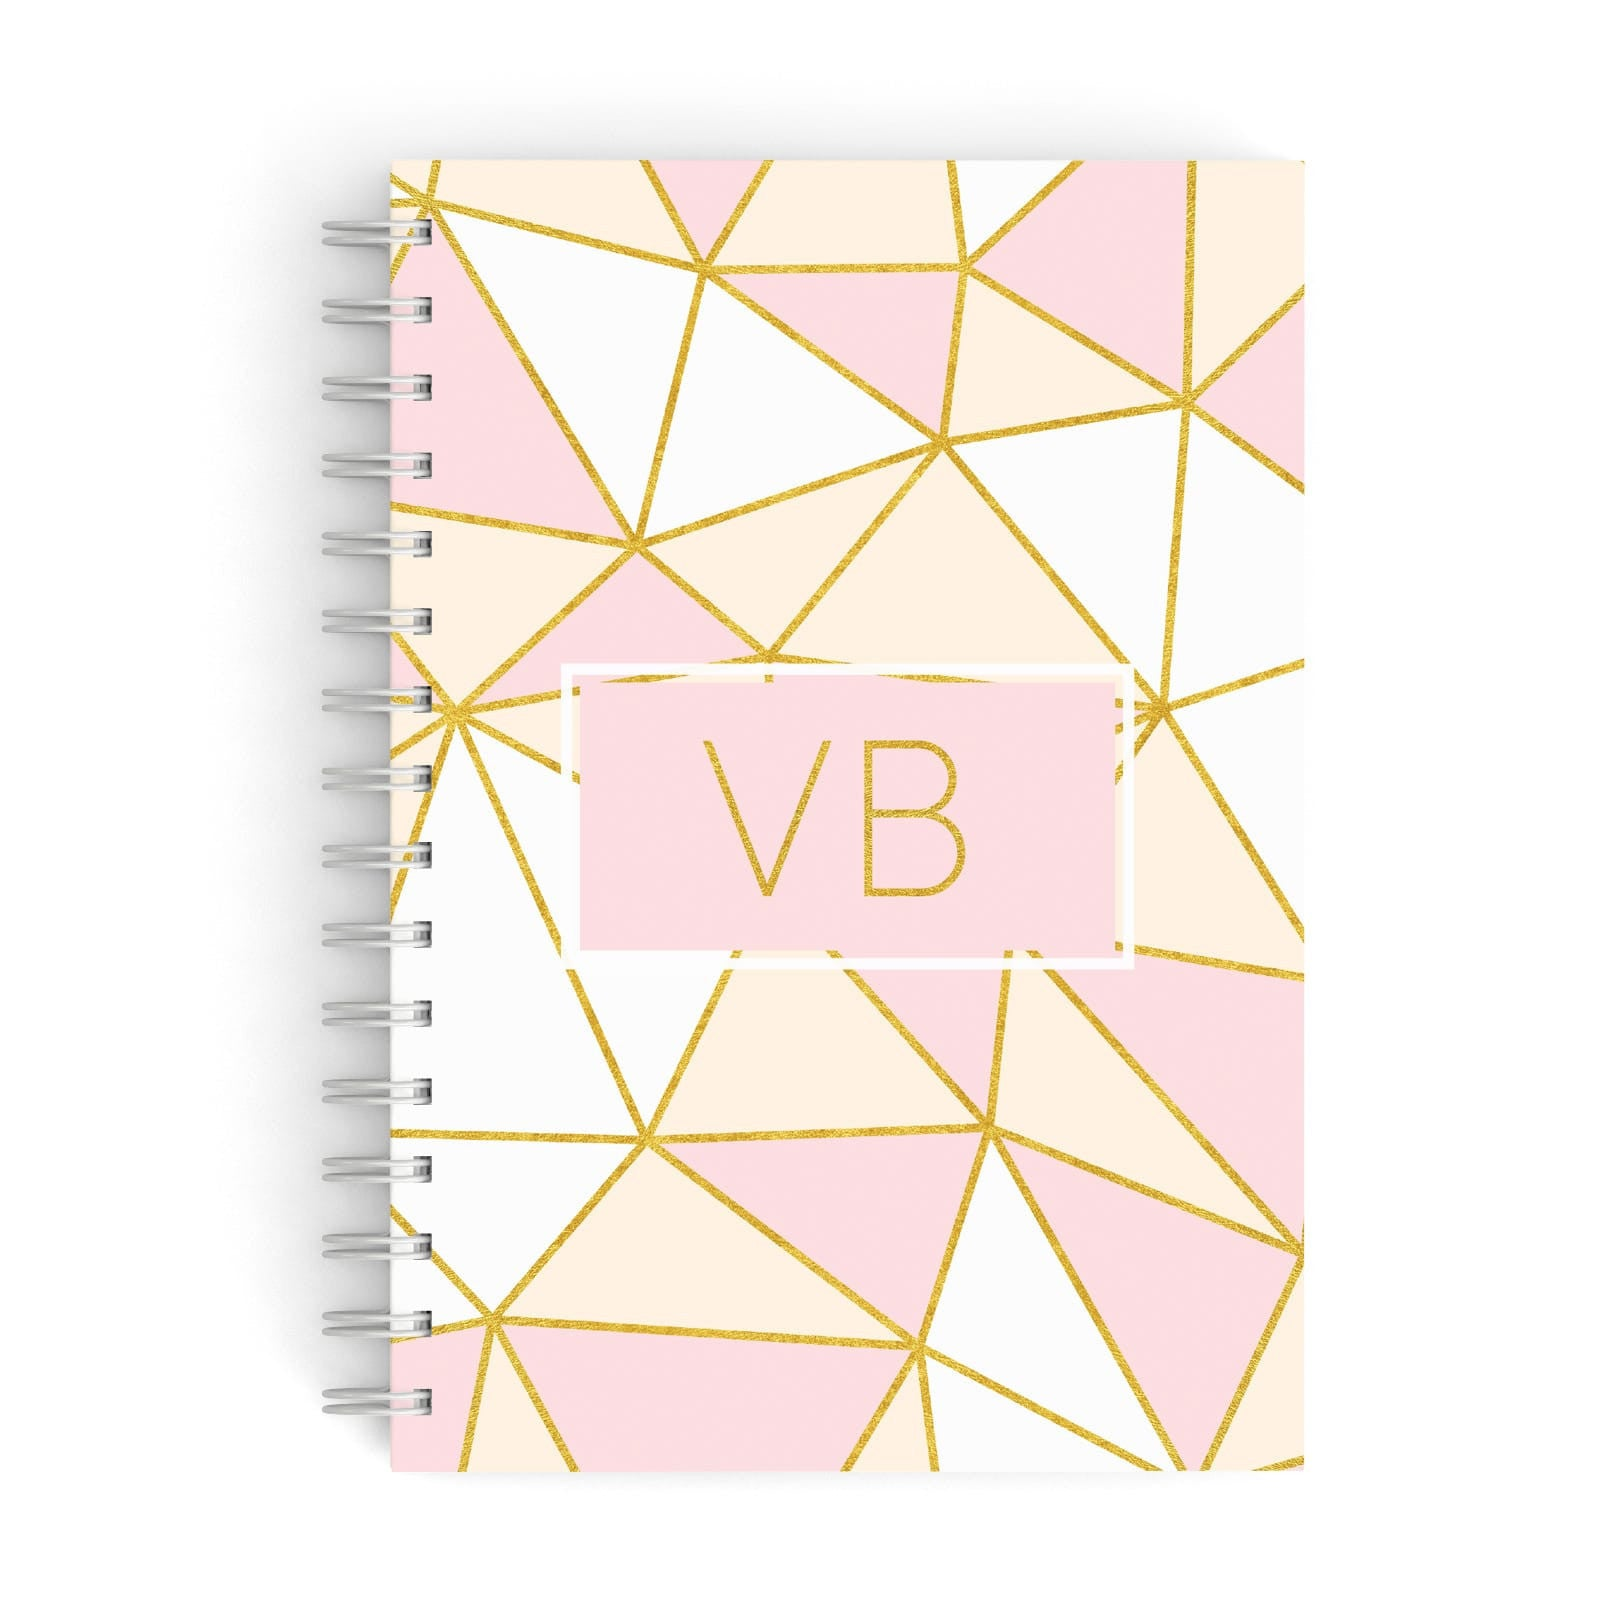 Personalised Gold Initials Geometric A5 Hardcover Notebook